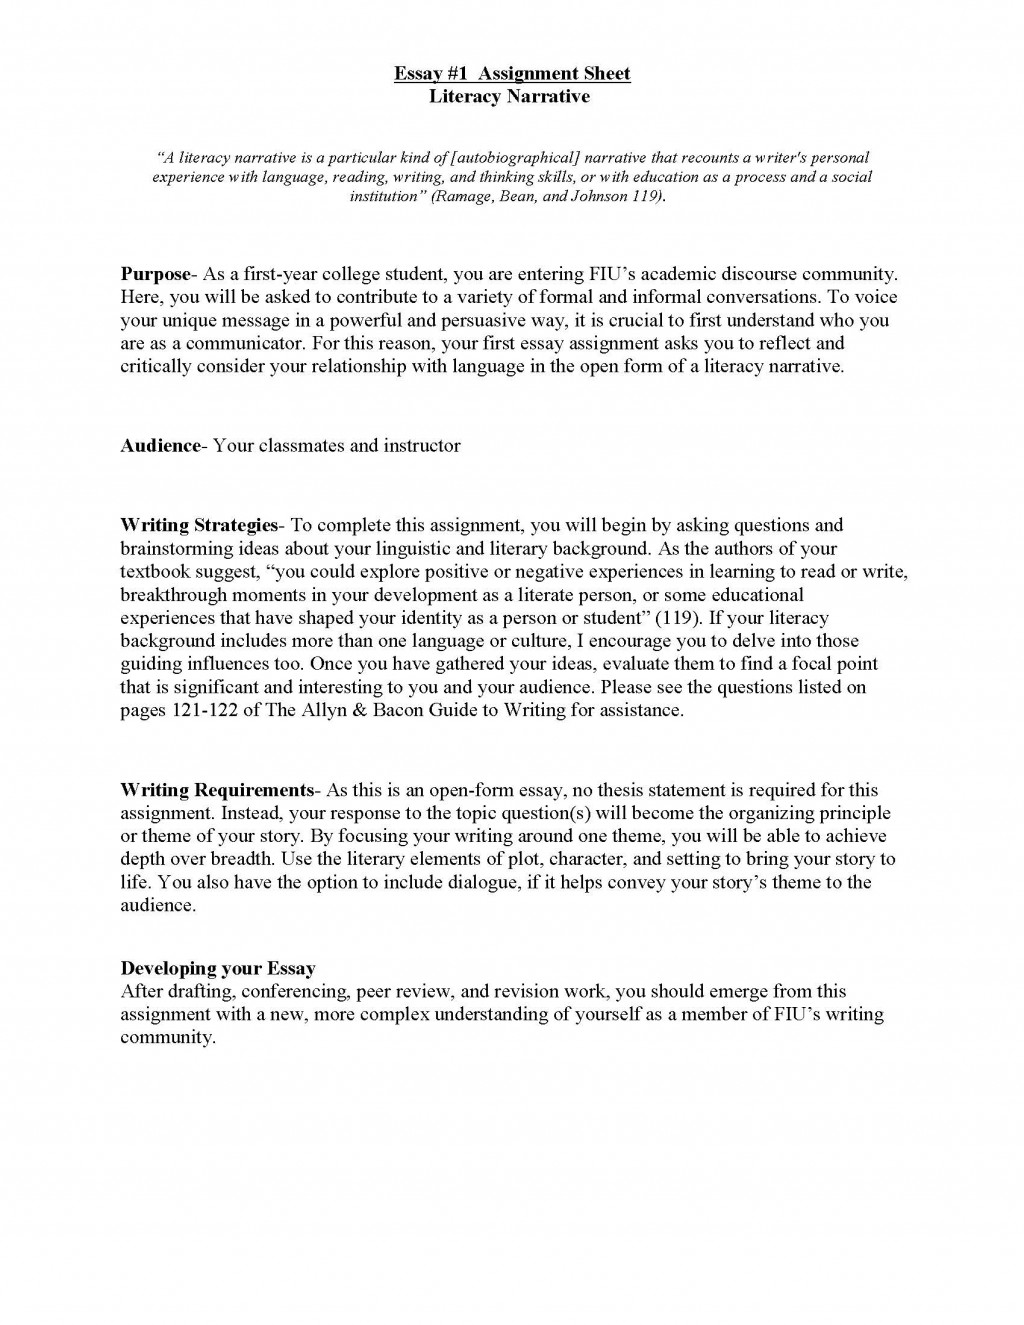 017 Literacy Narrative Unit Assignment Spring 2012 Page 1s Of Essays Essay Rare Examples Personal For High School Example About Experience Pdf Composition Topics Large